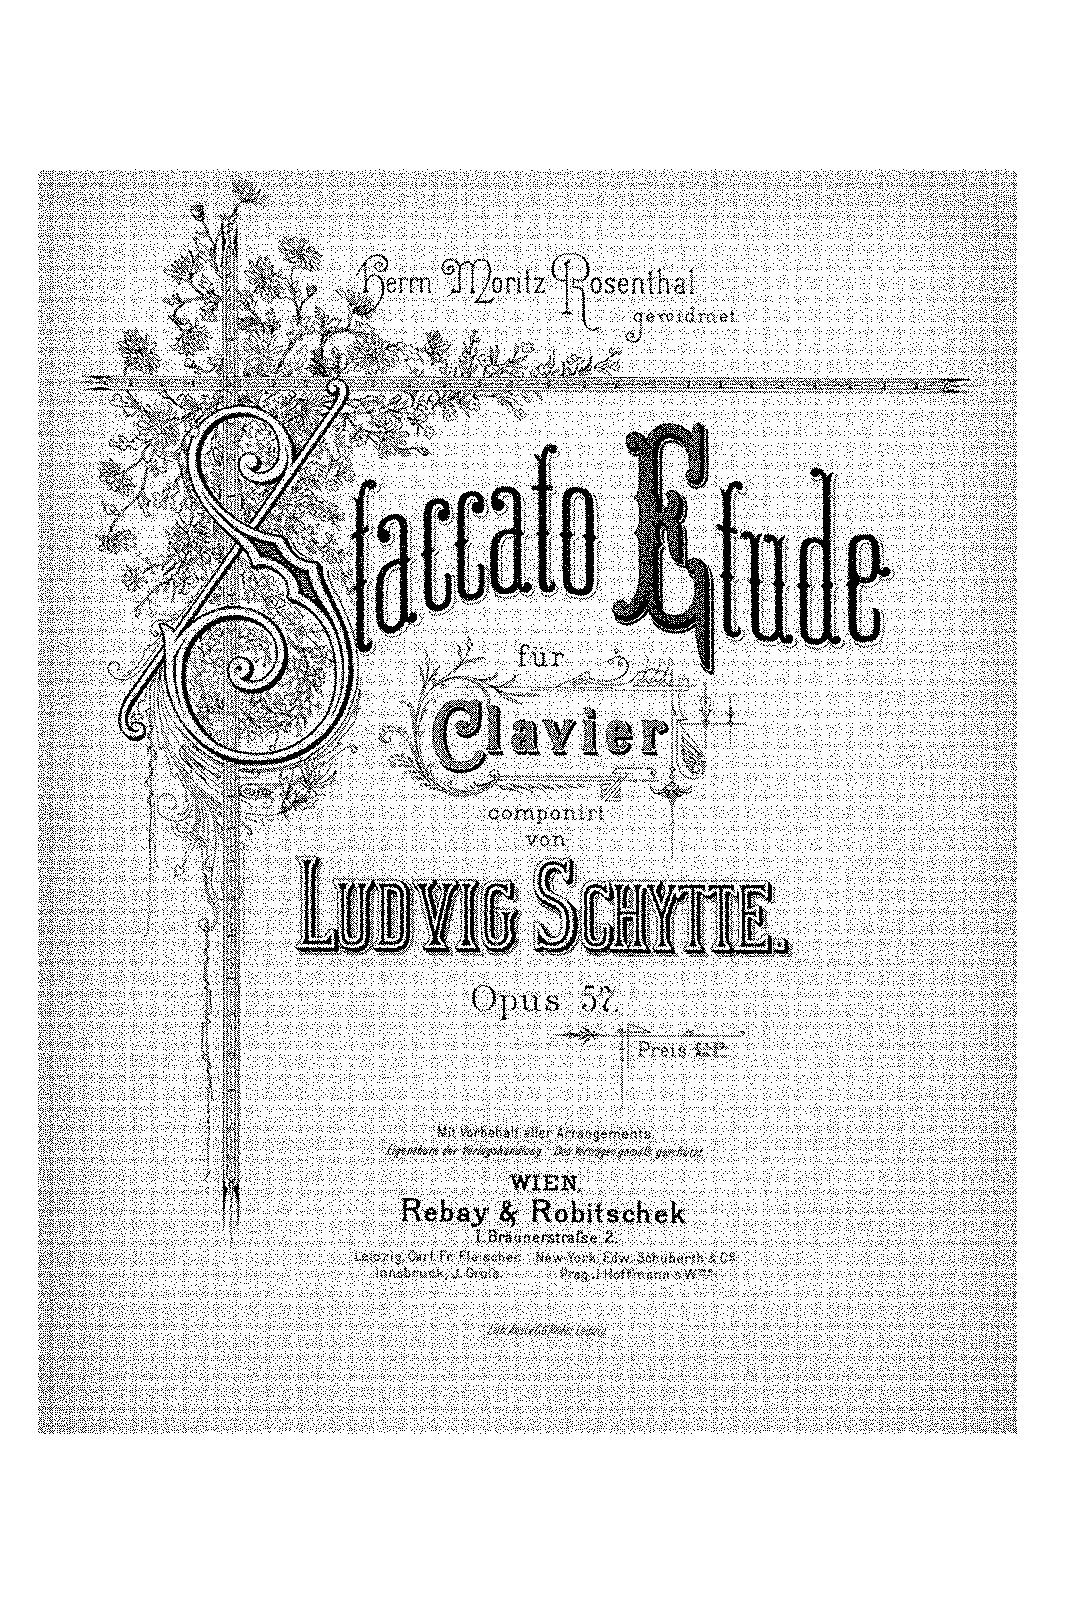 PMLP669422-Schytte op.057 Staccato-Etuede.pdf